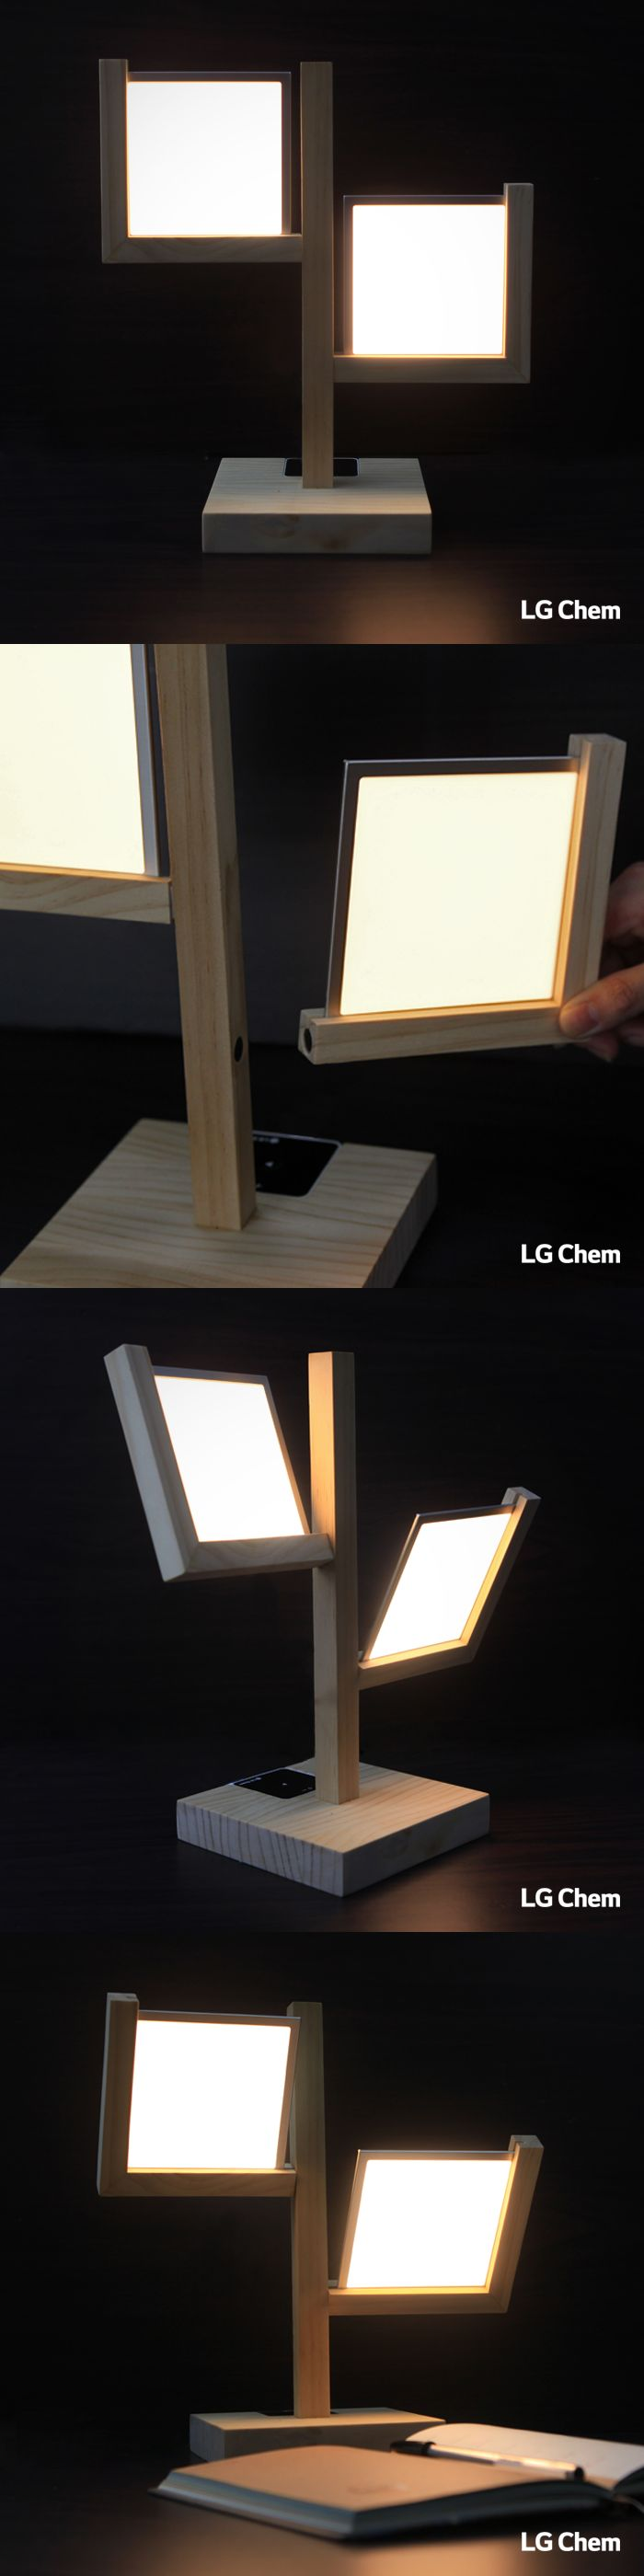 This Table Lamp Was Made With An Lg Display Oled Lighting Double Kit Magnets Were